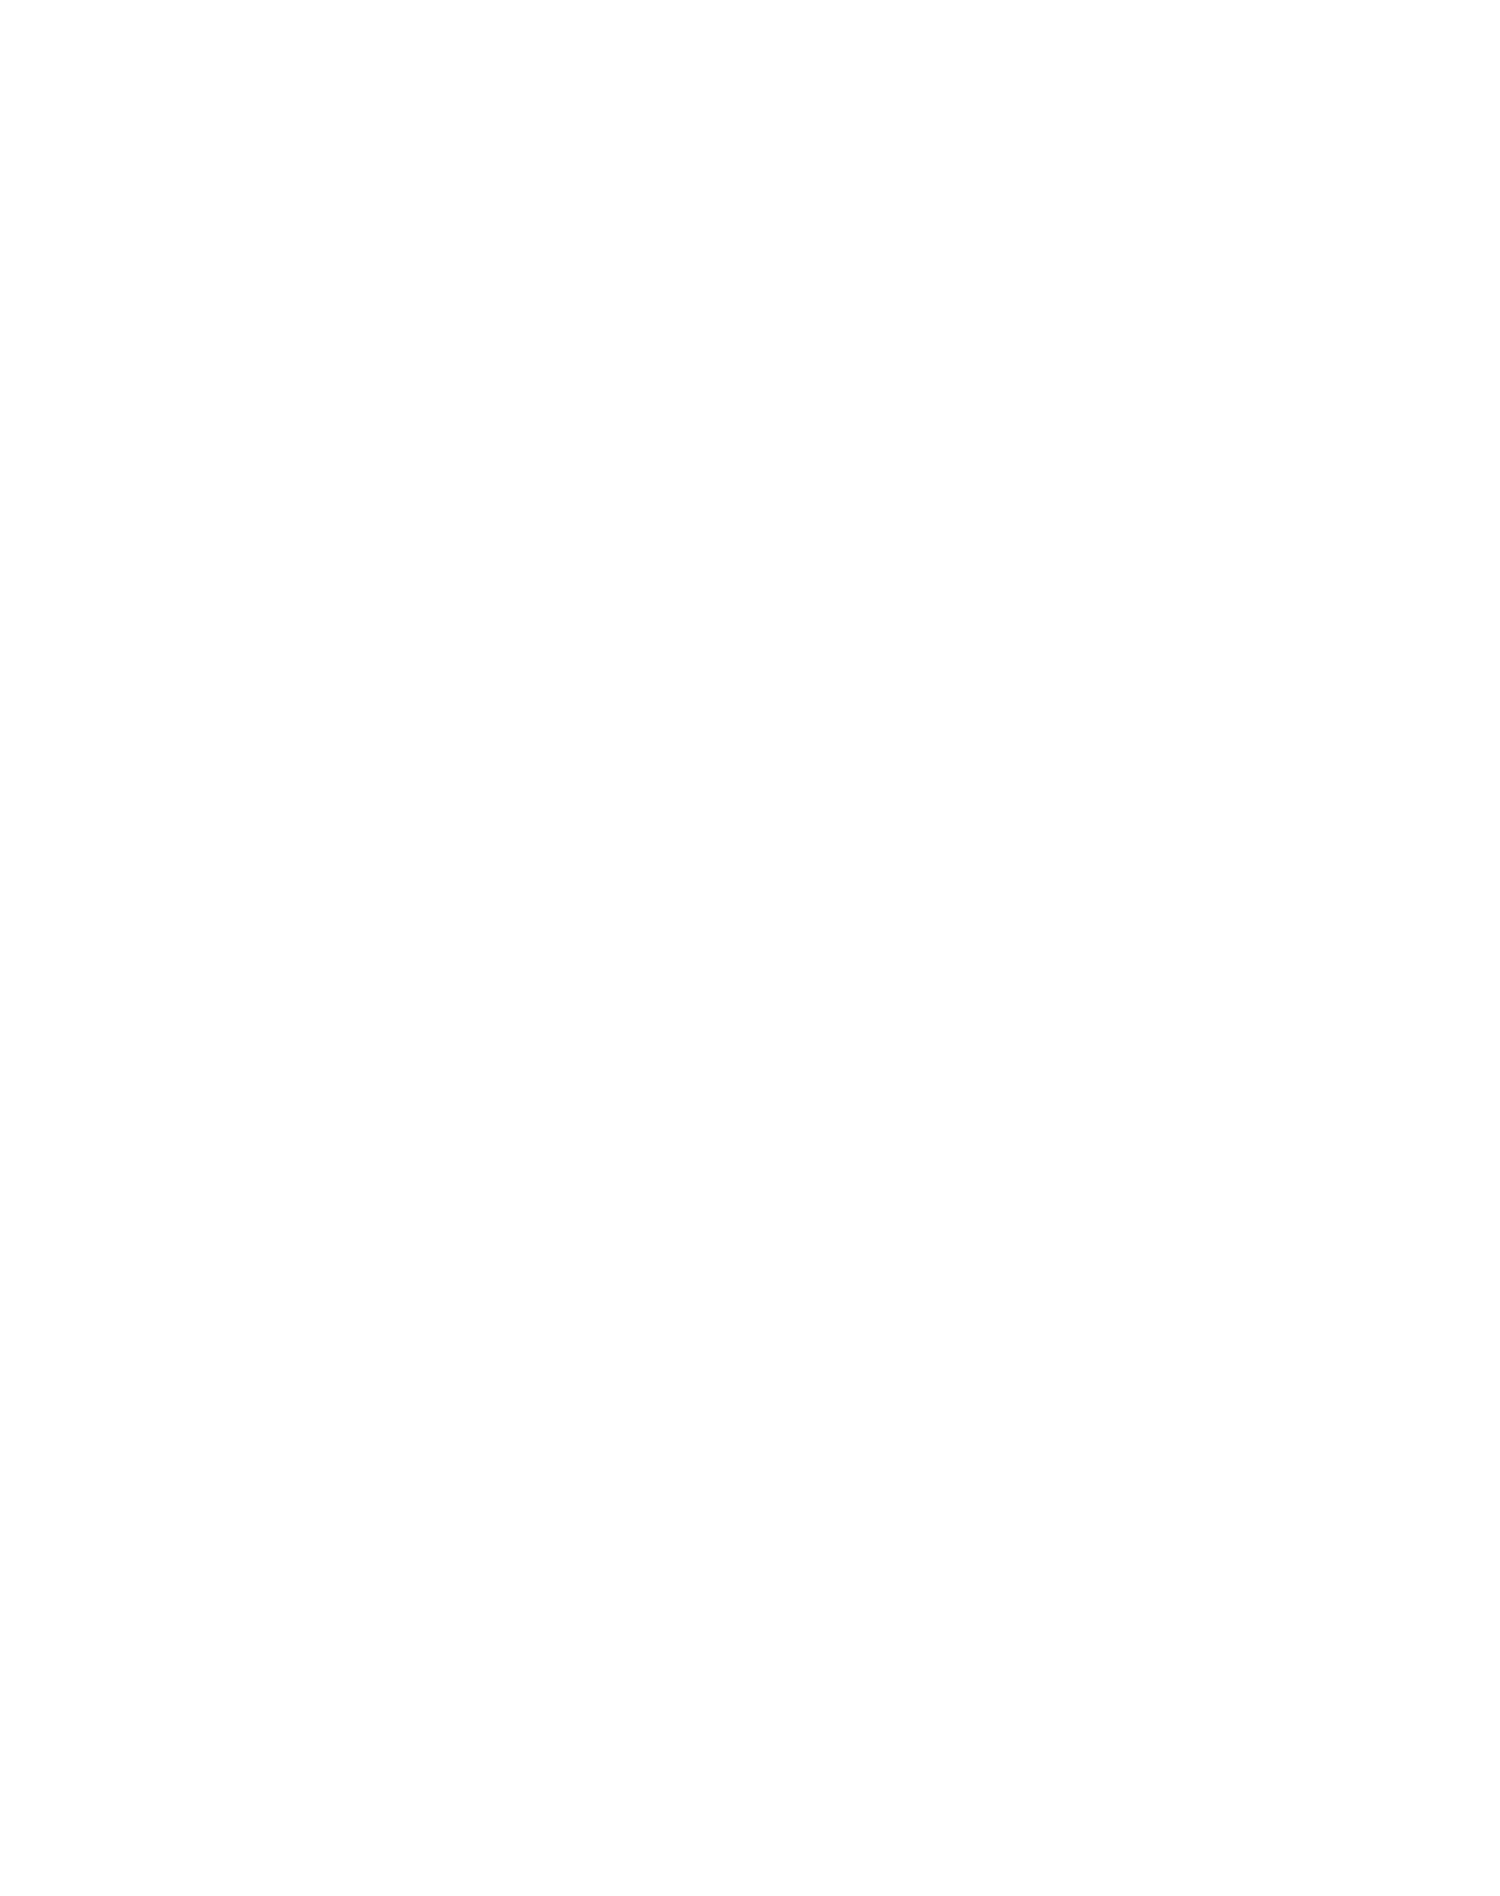 Tyson Mark Consulting